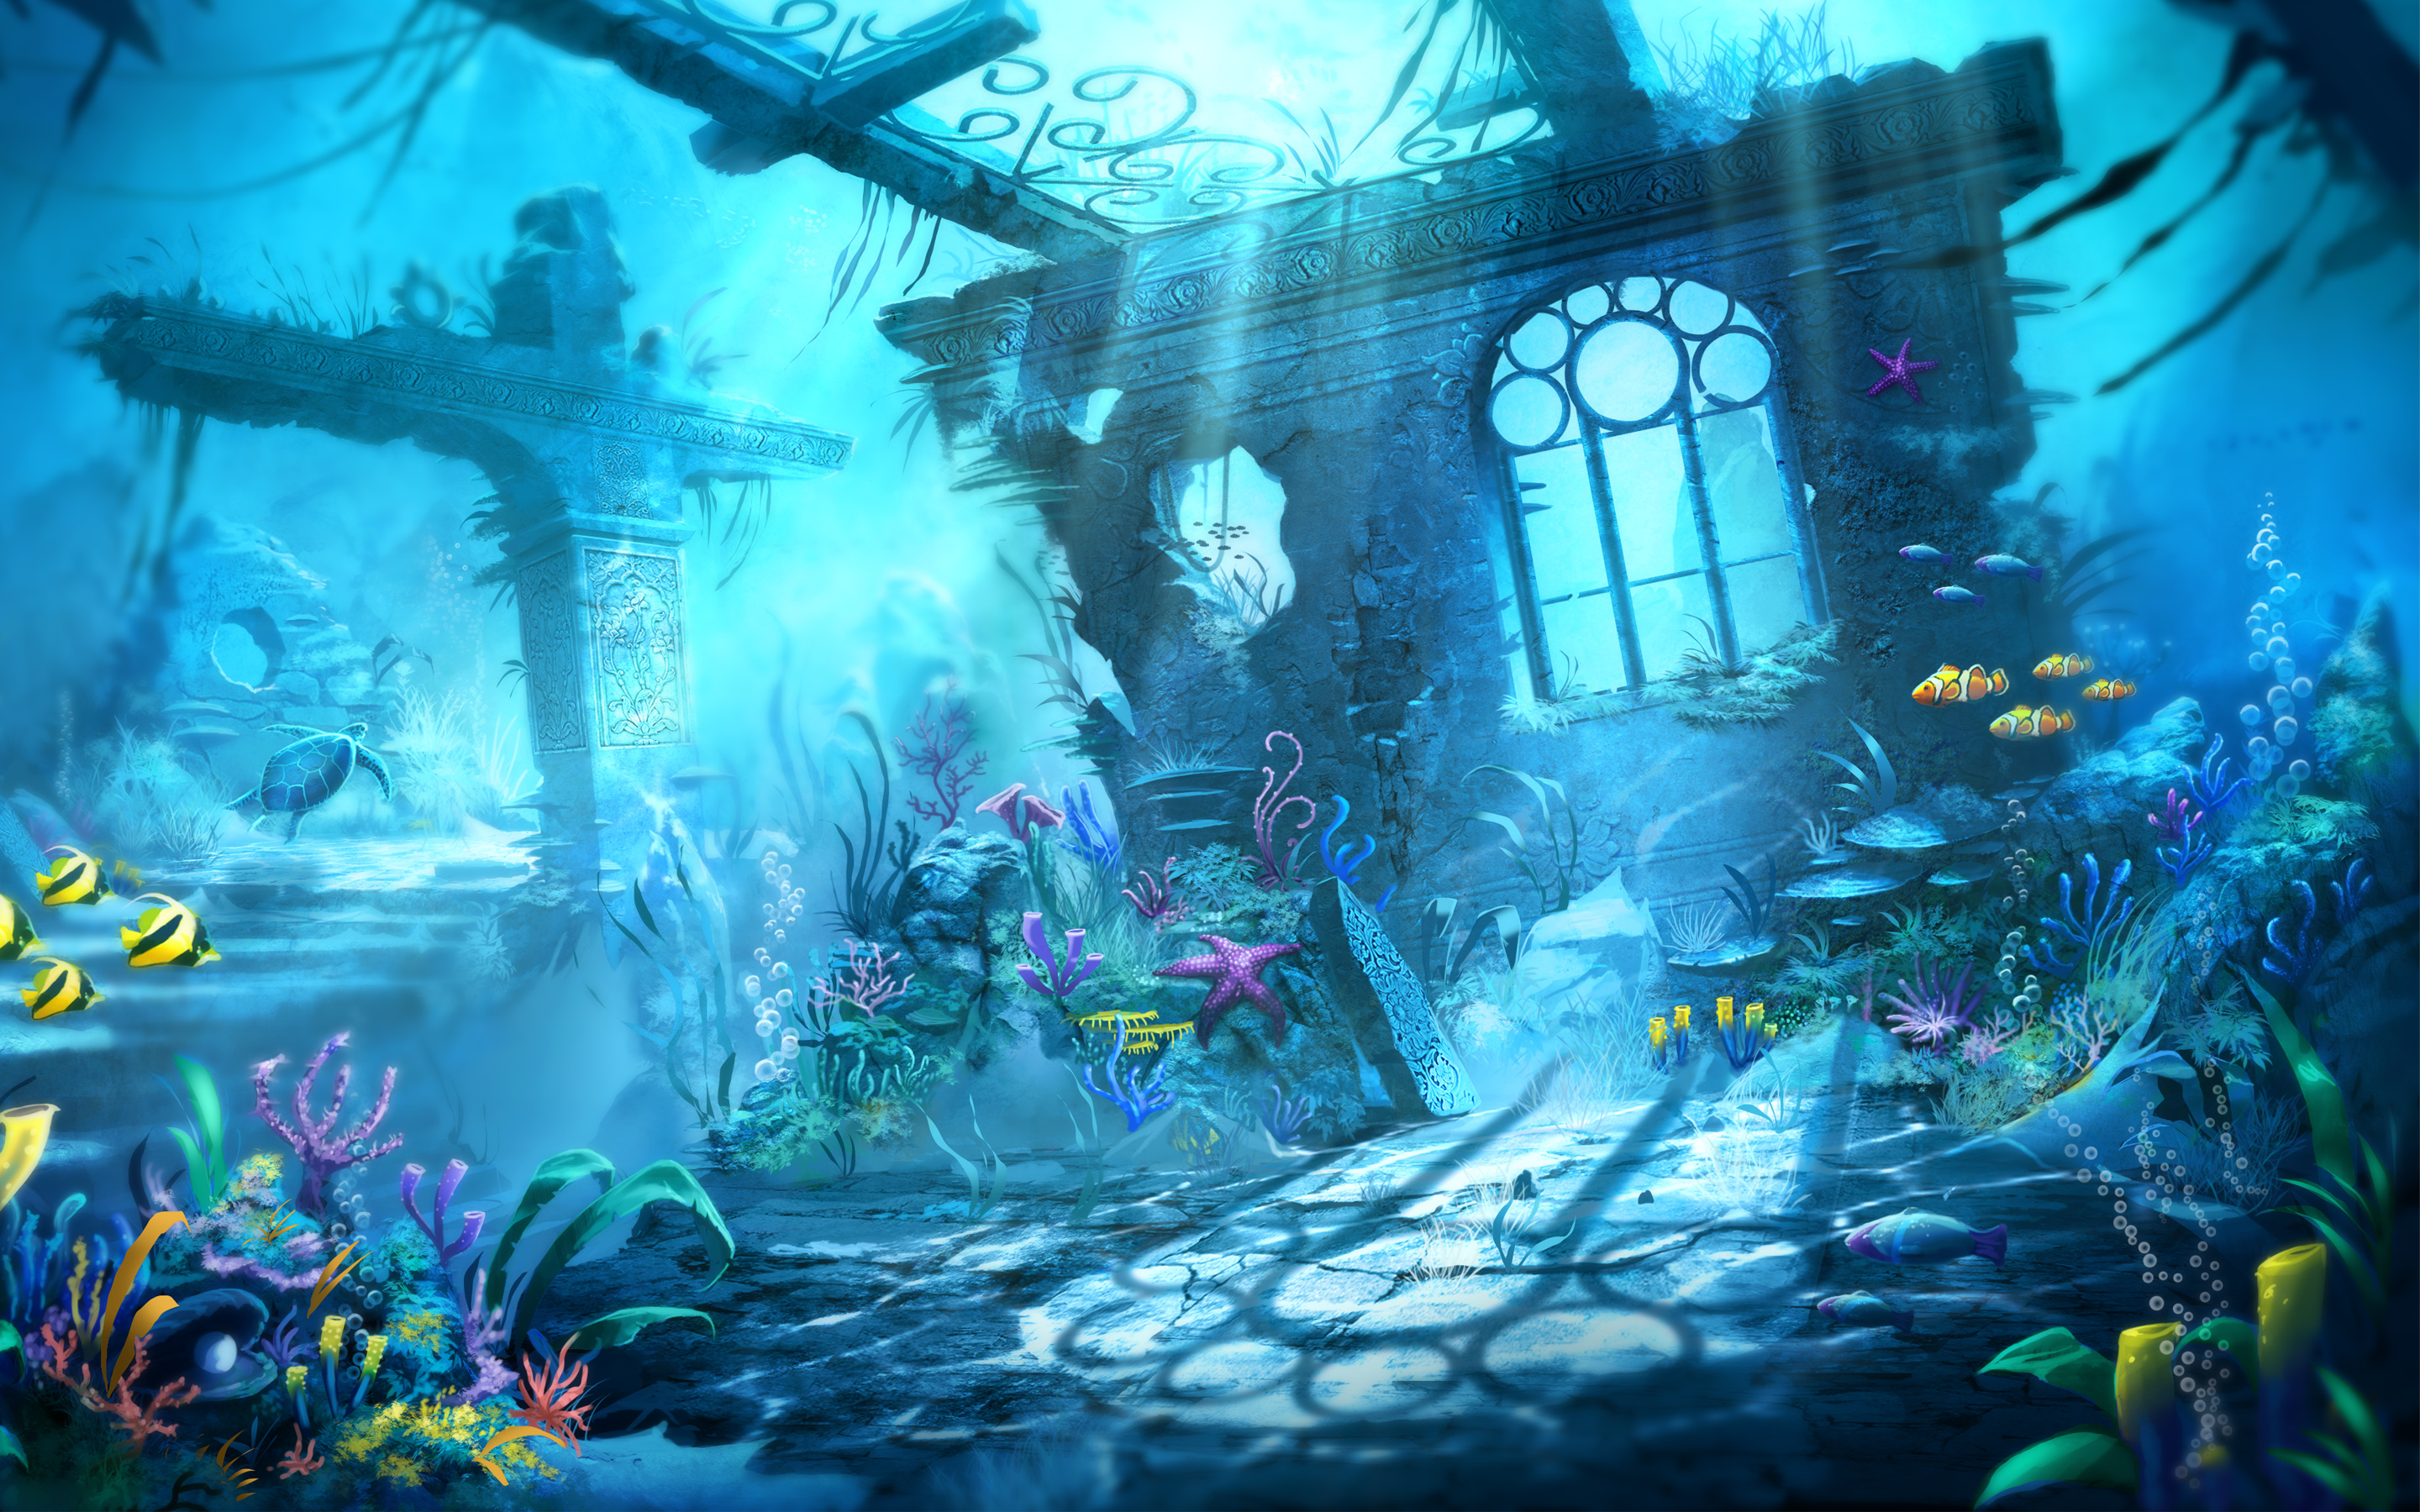 Underwater sea fishes hd wallpapers npicx we share - Beautiful Underwater Wallpaper Wallpapersafari